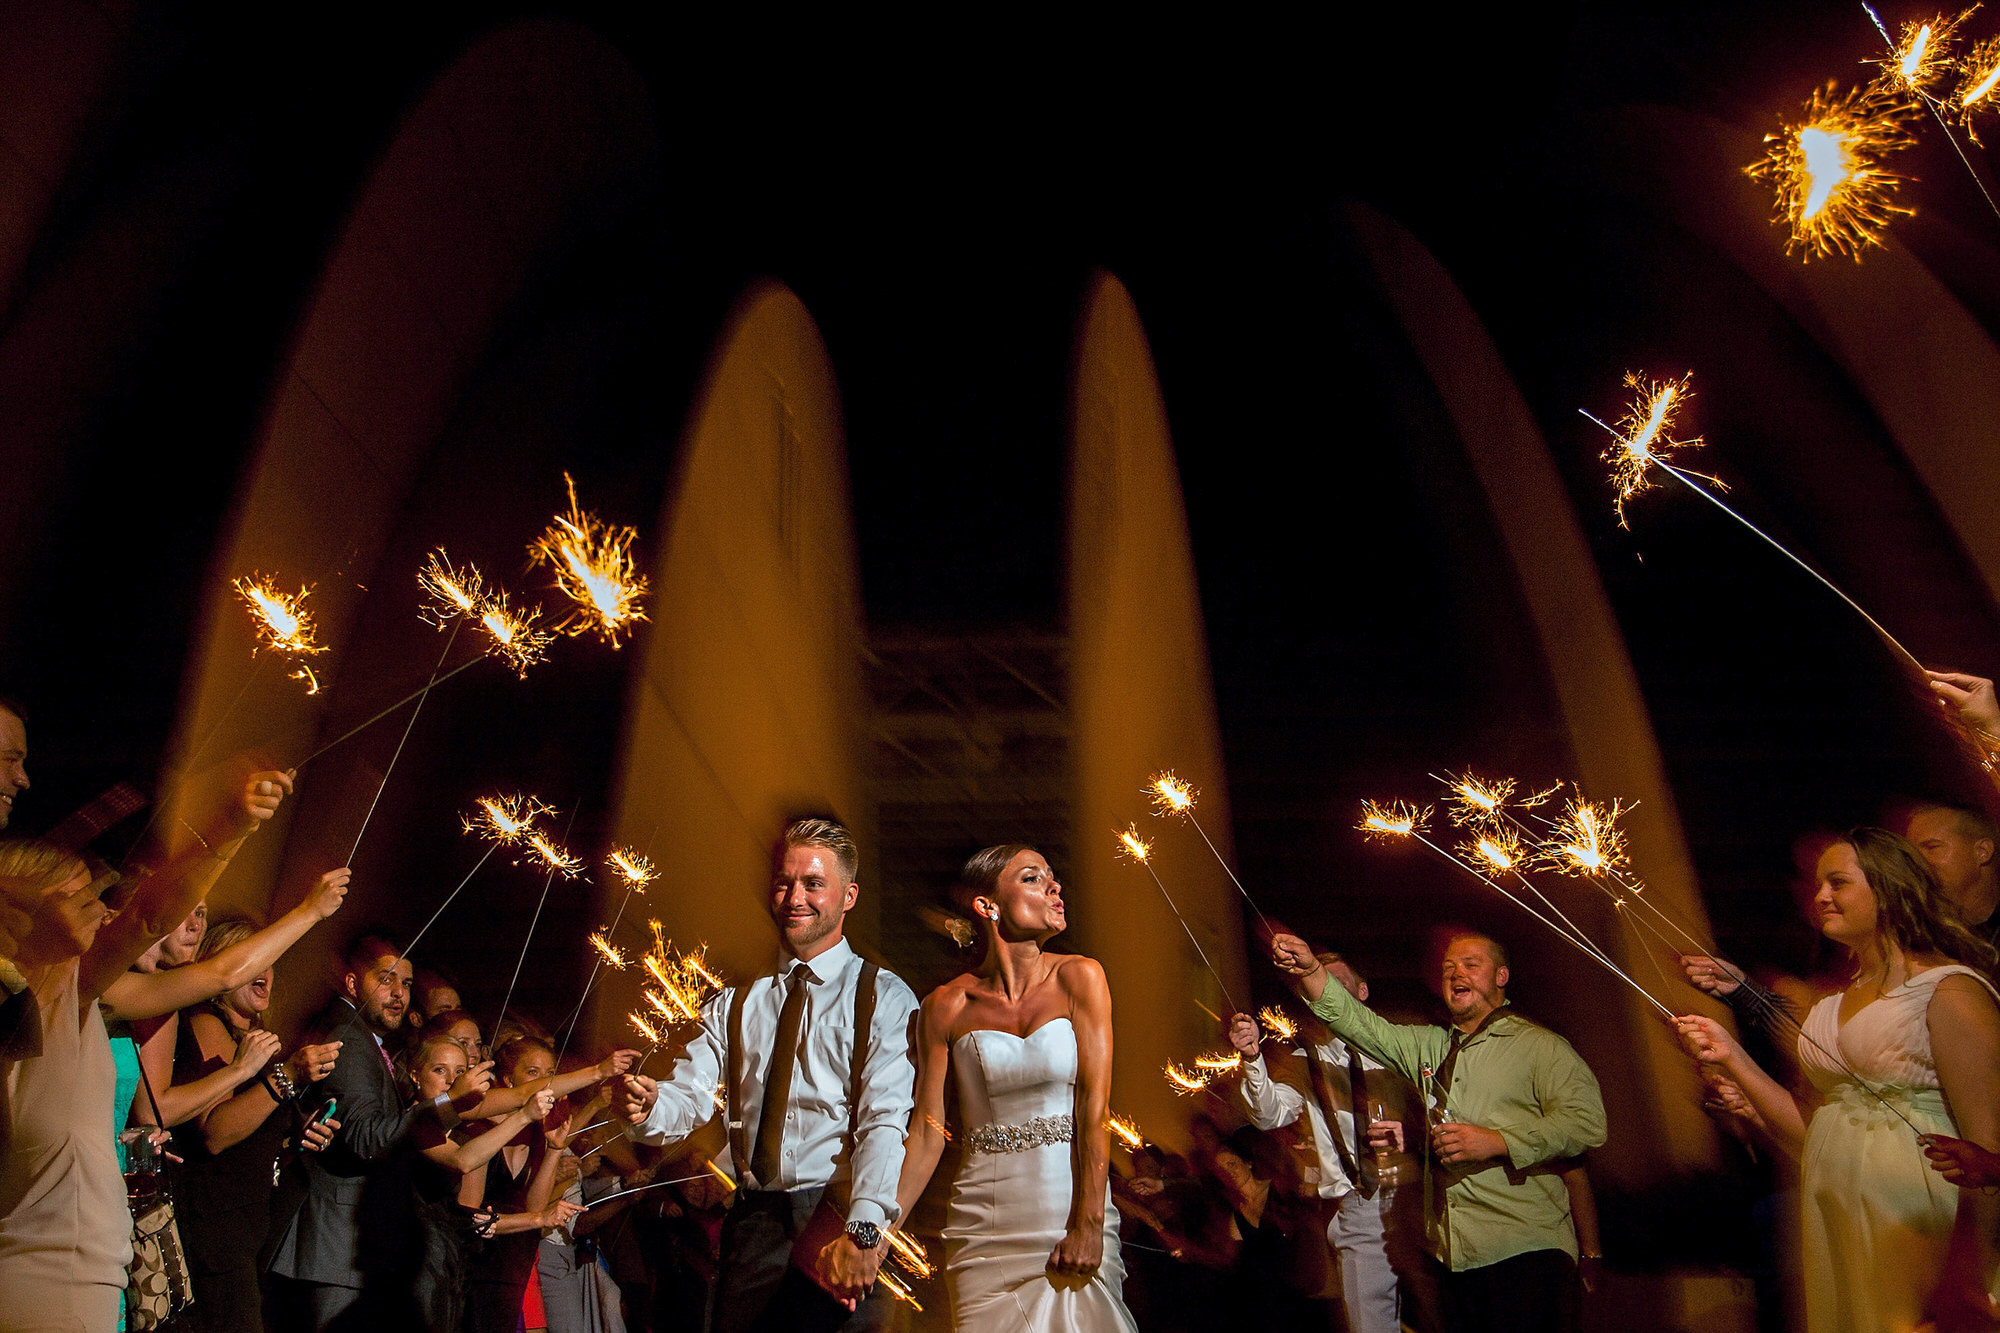 Bride and room exit ceremony with sparklers - photo by Tyler Wirken